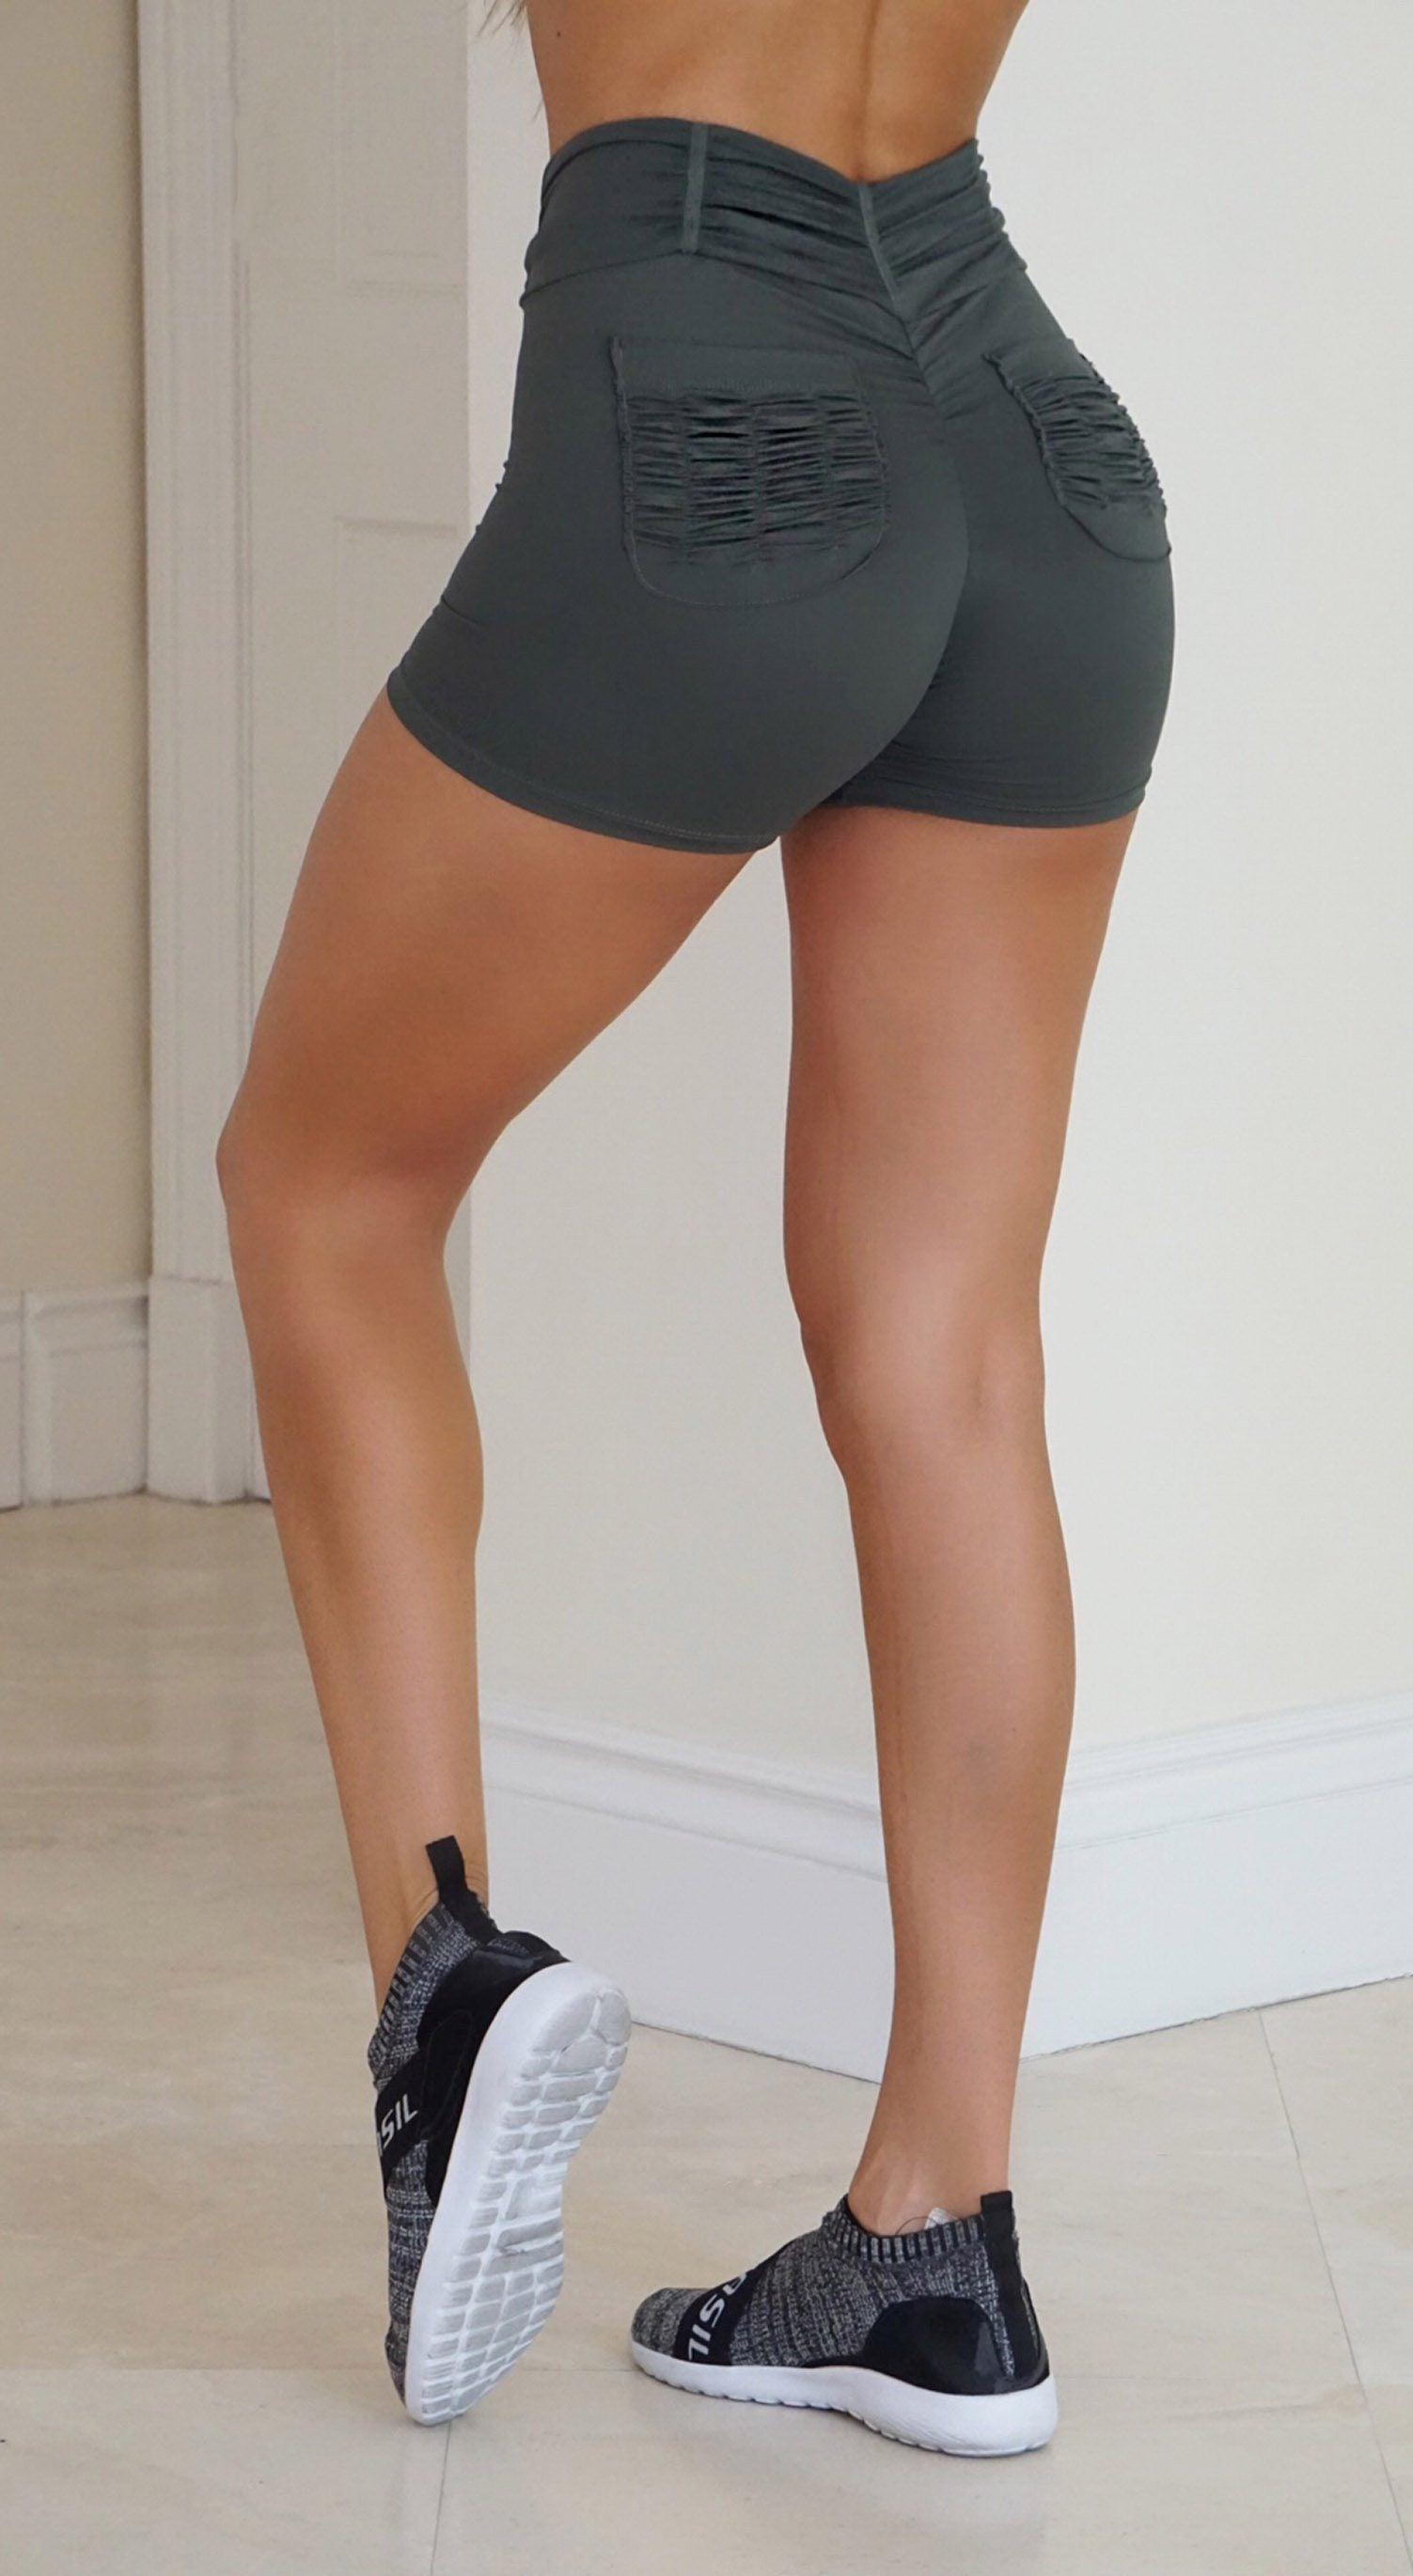 Brazilian Workout Shorts - Booty Up Pockets Green